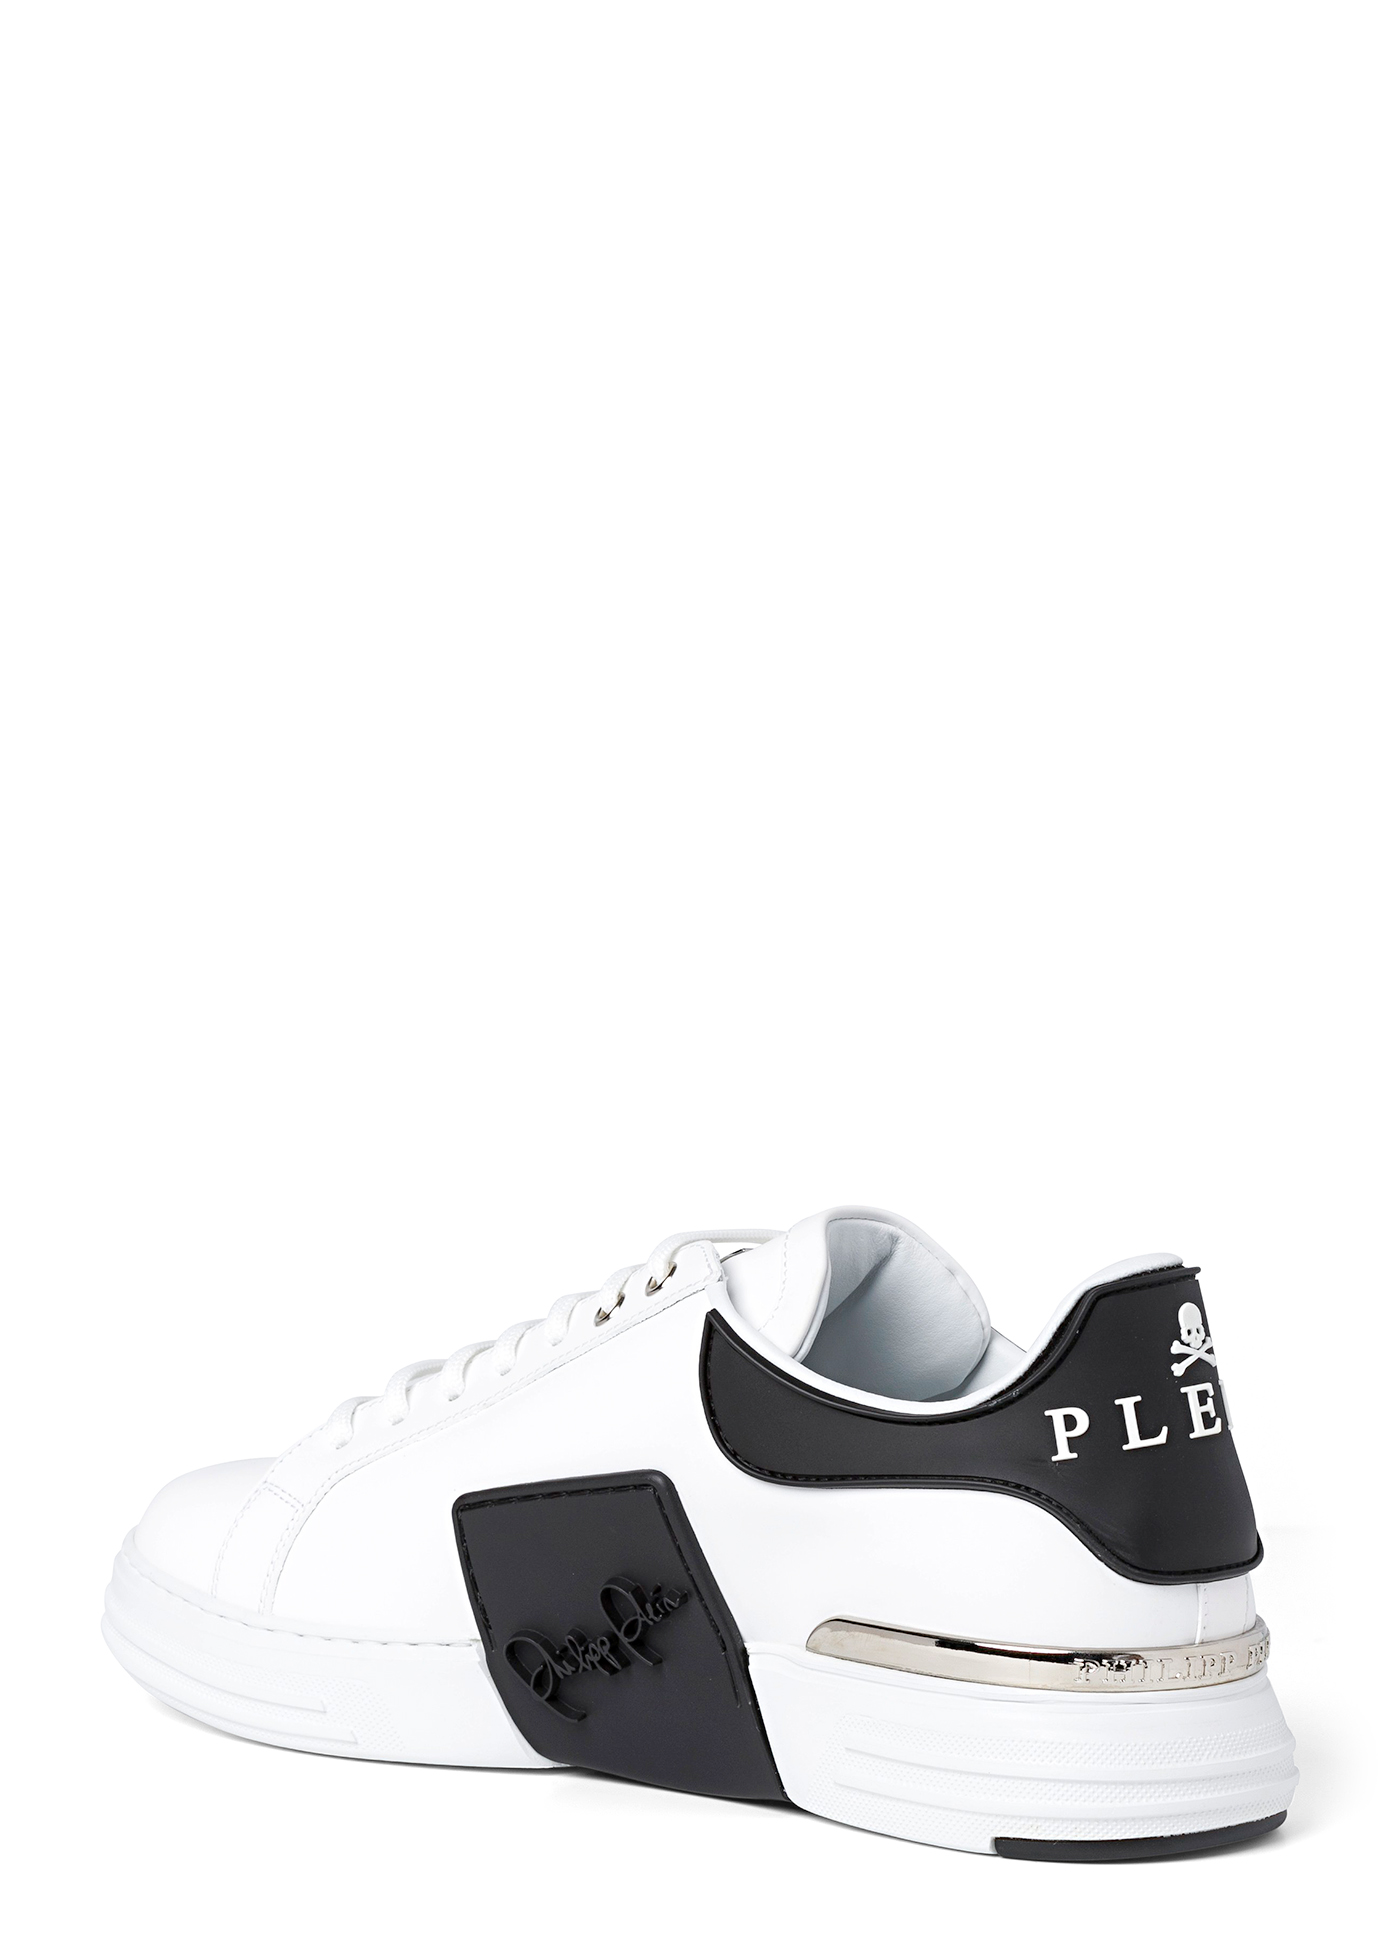 Rubber Leather PHANTOM KICK$ Lo-Top Sneakers Iconic Plein image number 2